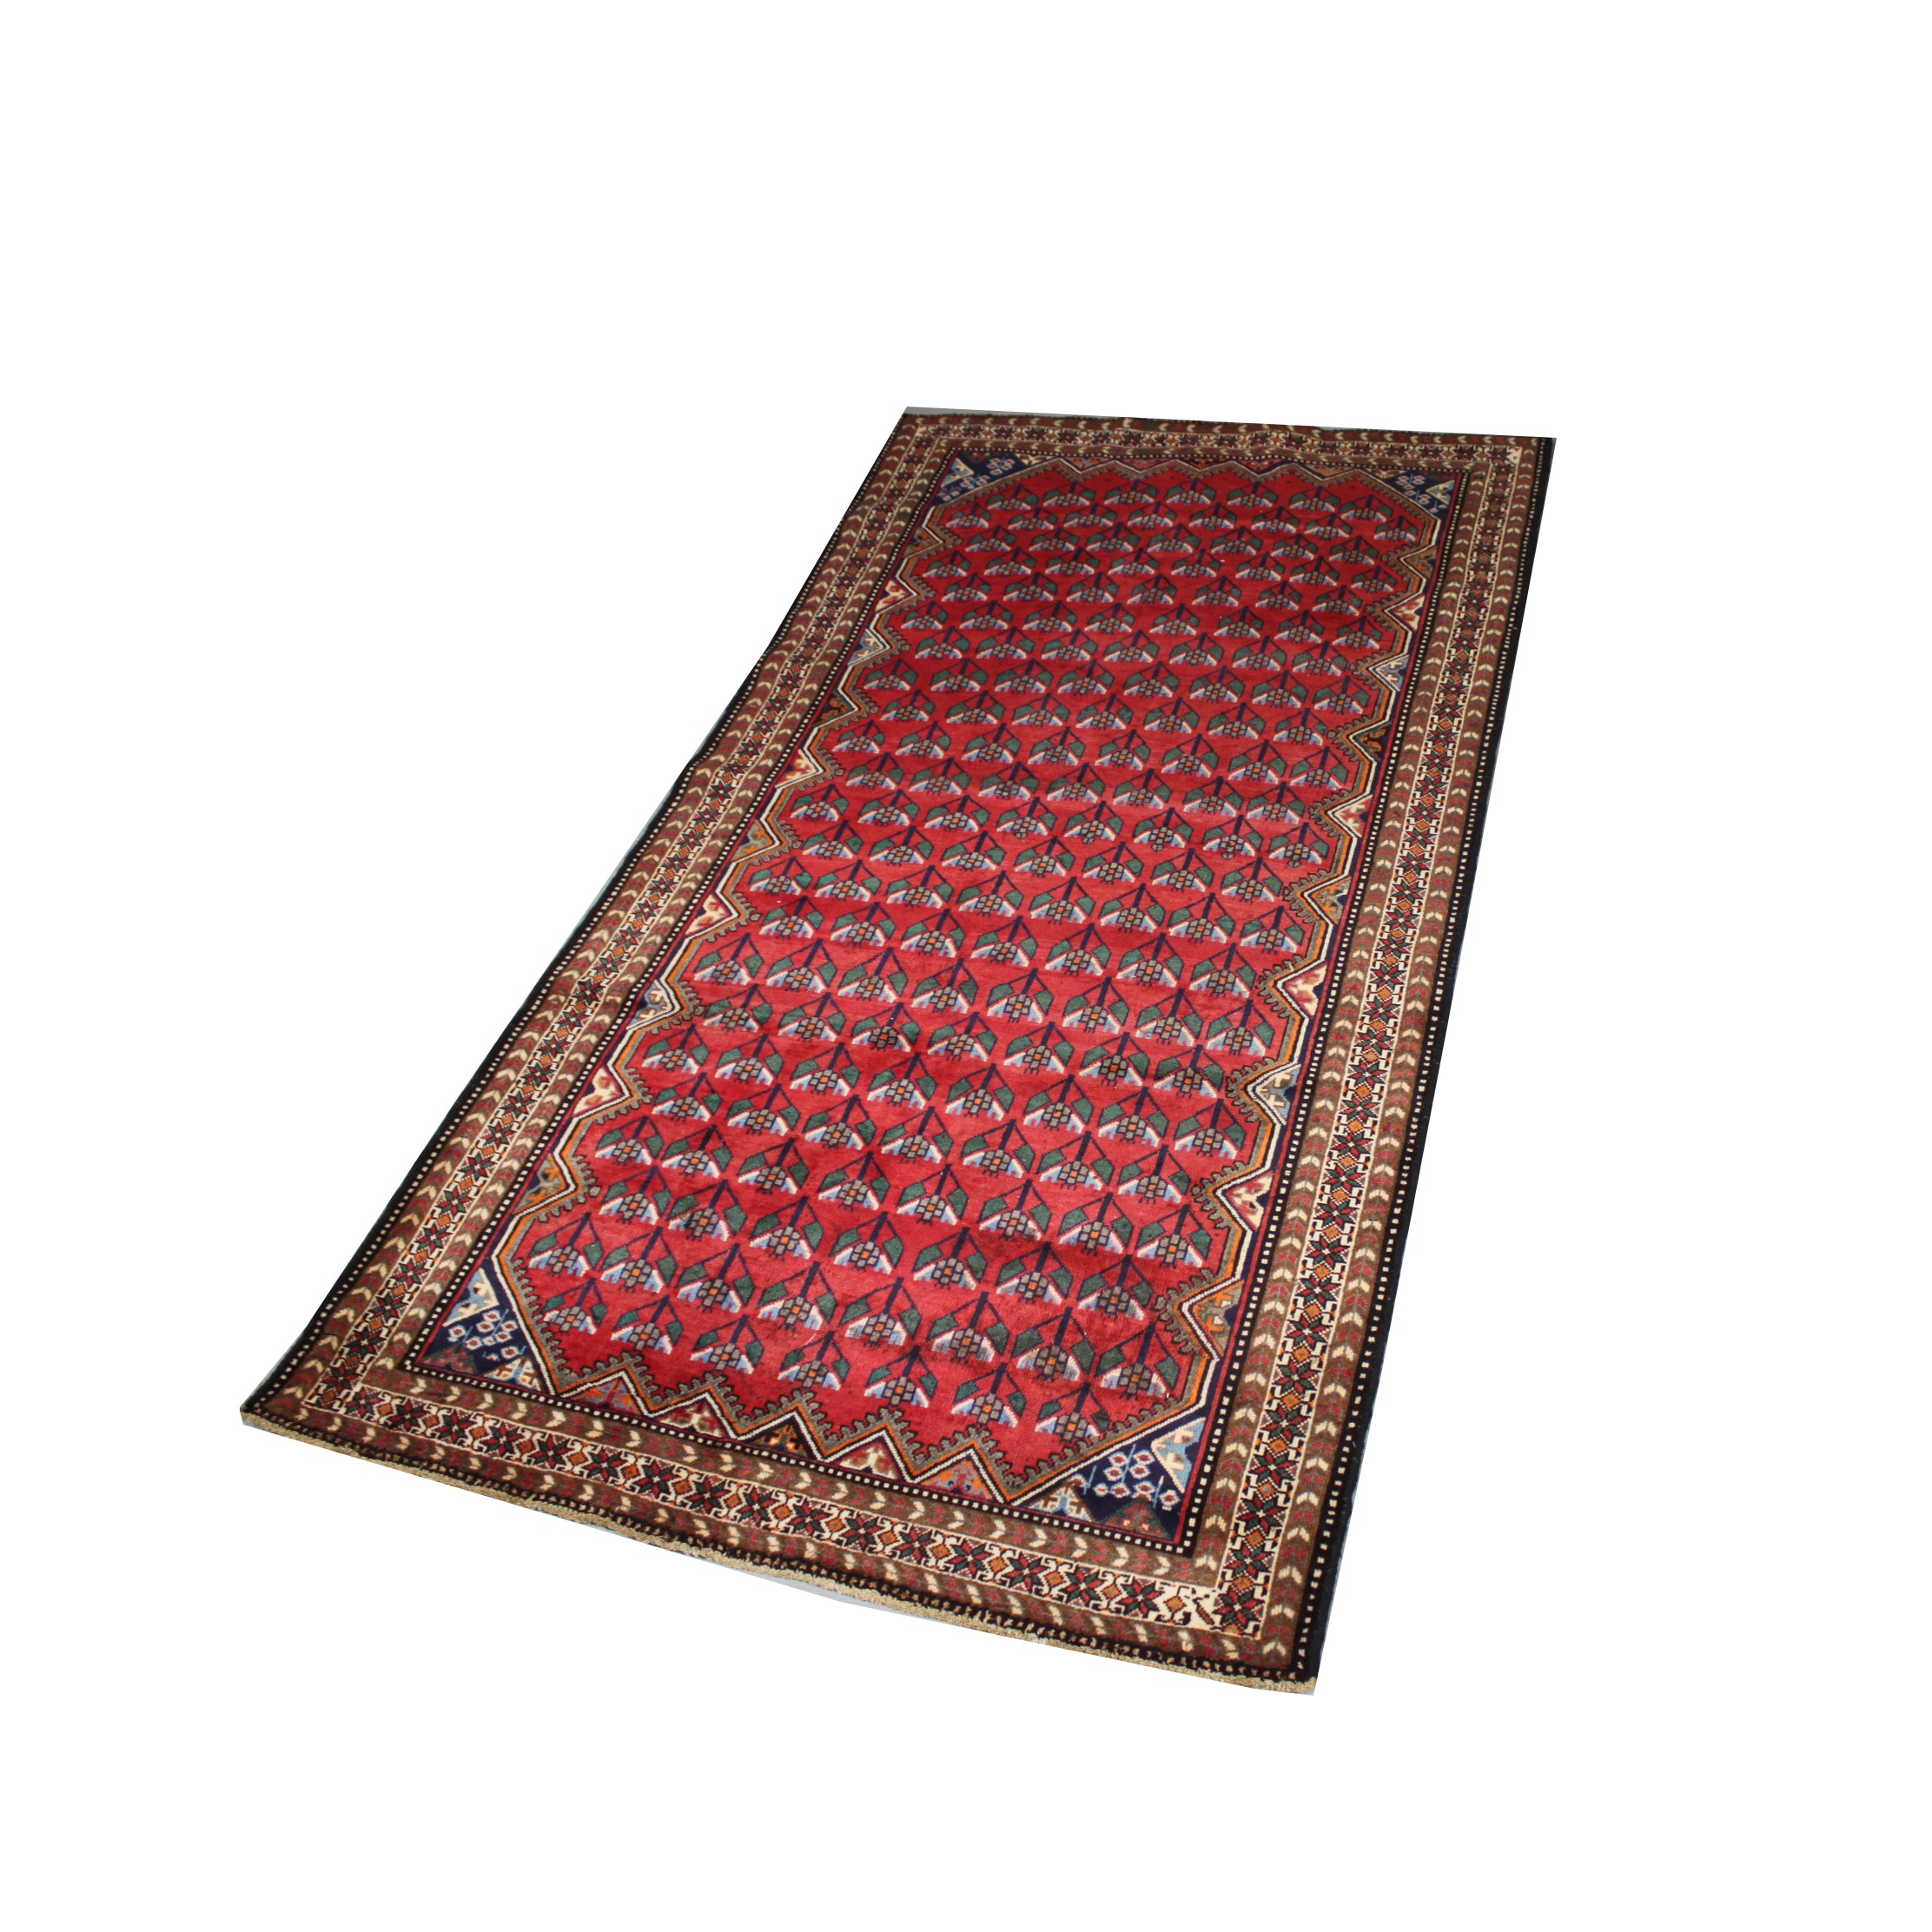 Hand-Knotted Persian Caucasian Wool Area Rug